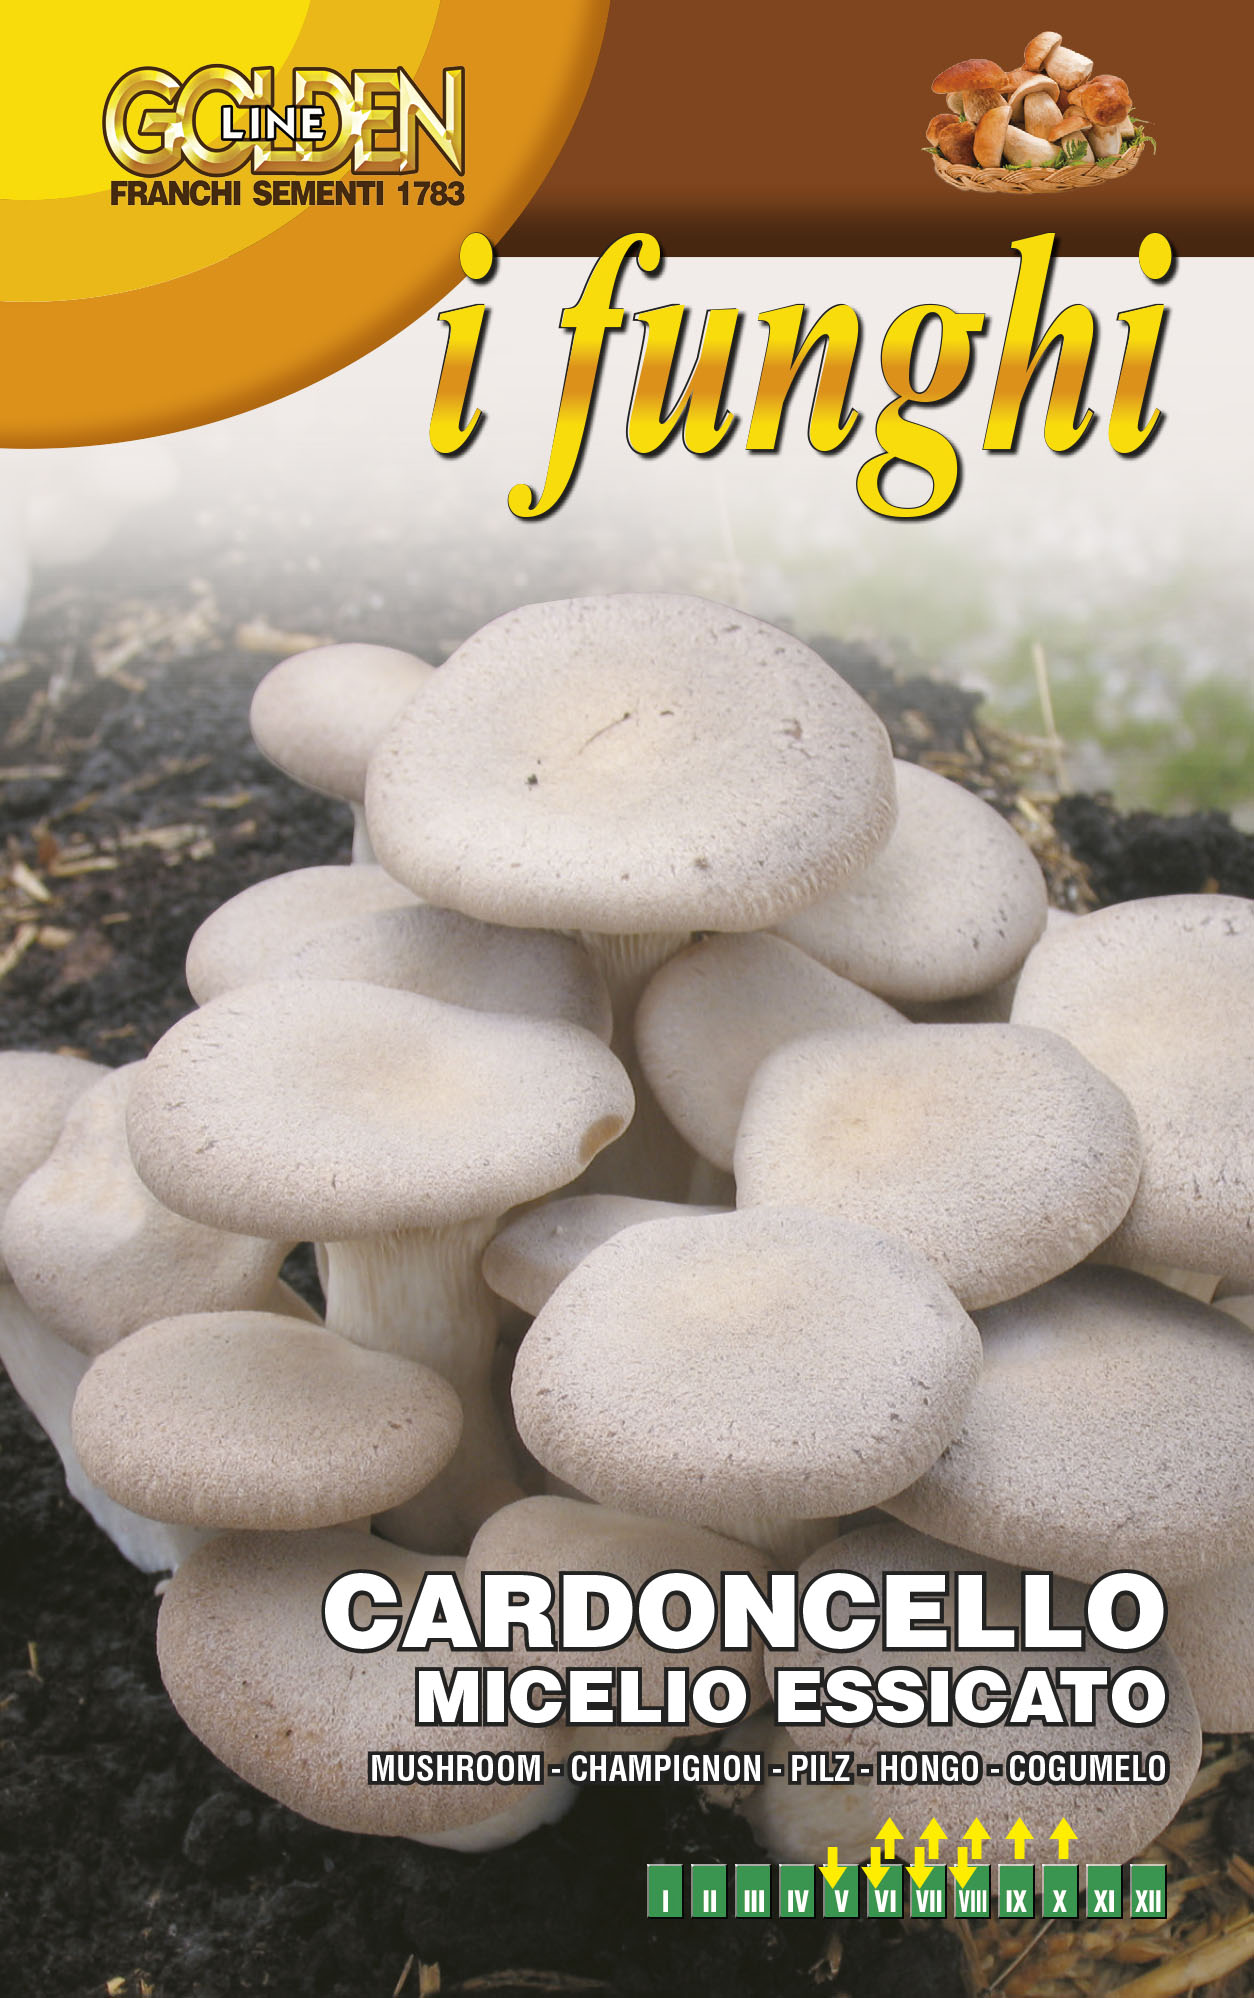 Cardoncello mushroom Ideal for Indoor Gardening *UK Only